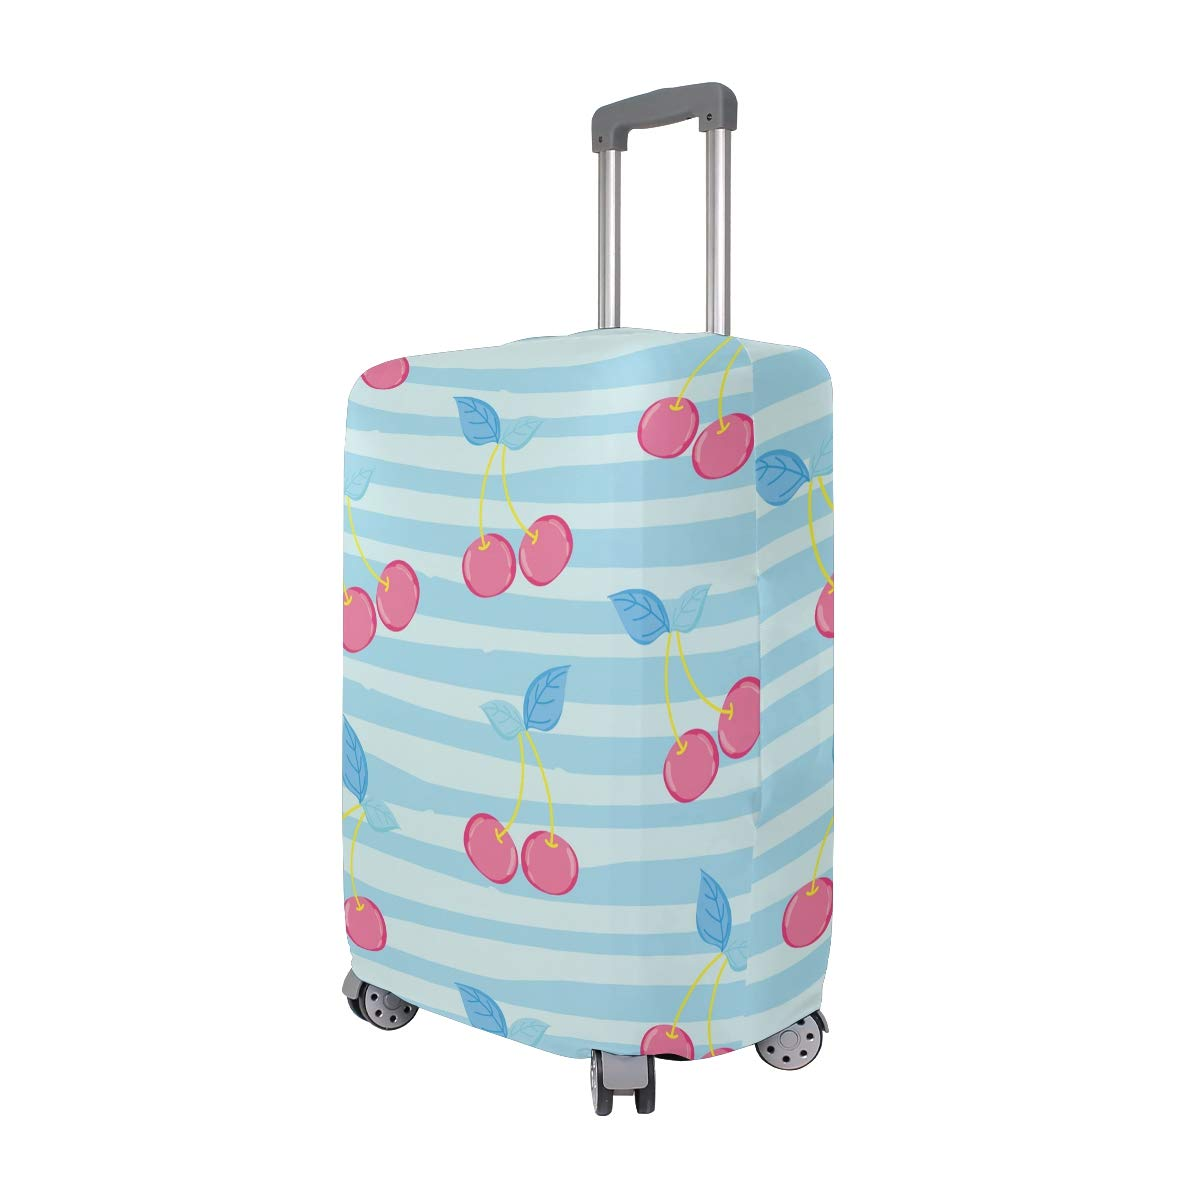 Baggage Covers Watercolor Red Cherries Pastel Blue Stripes Washable Protective Case